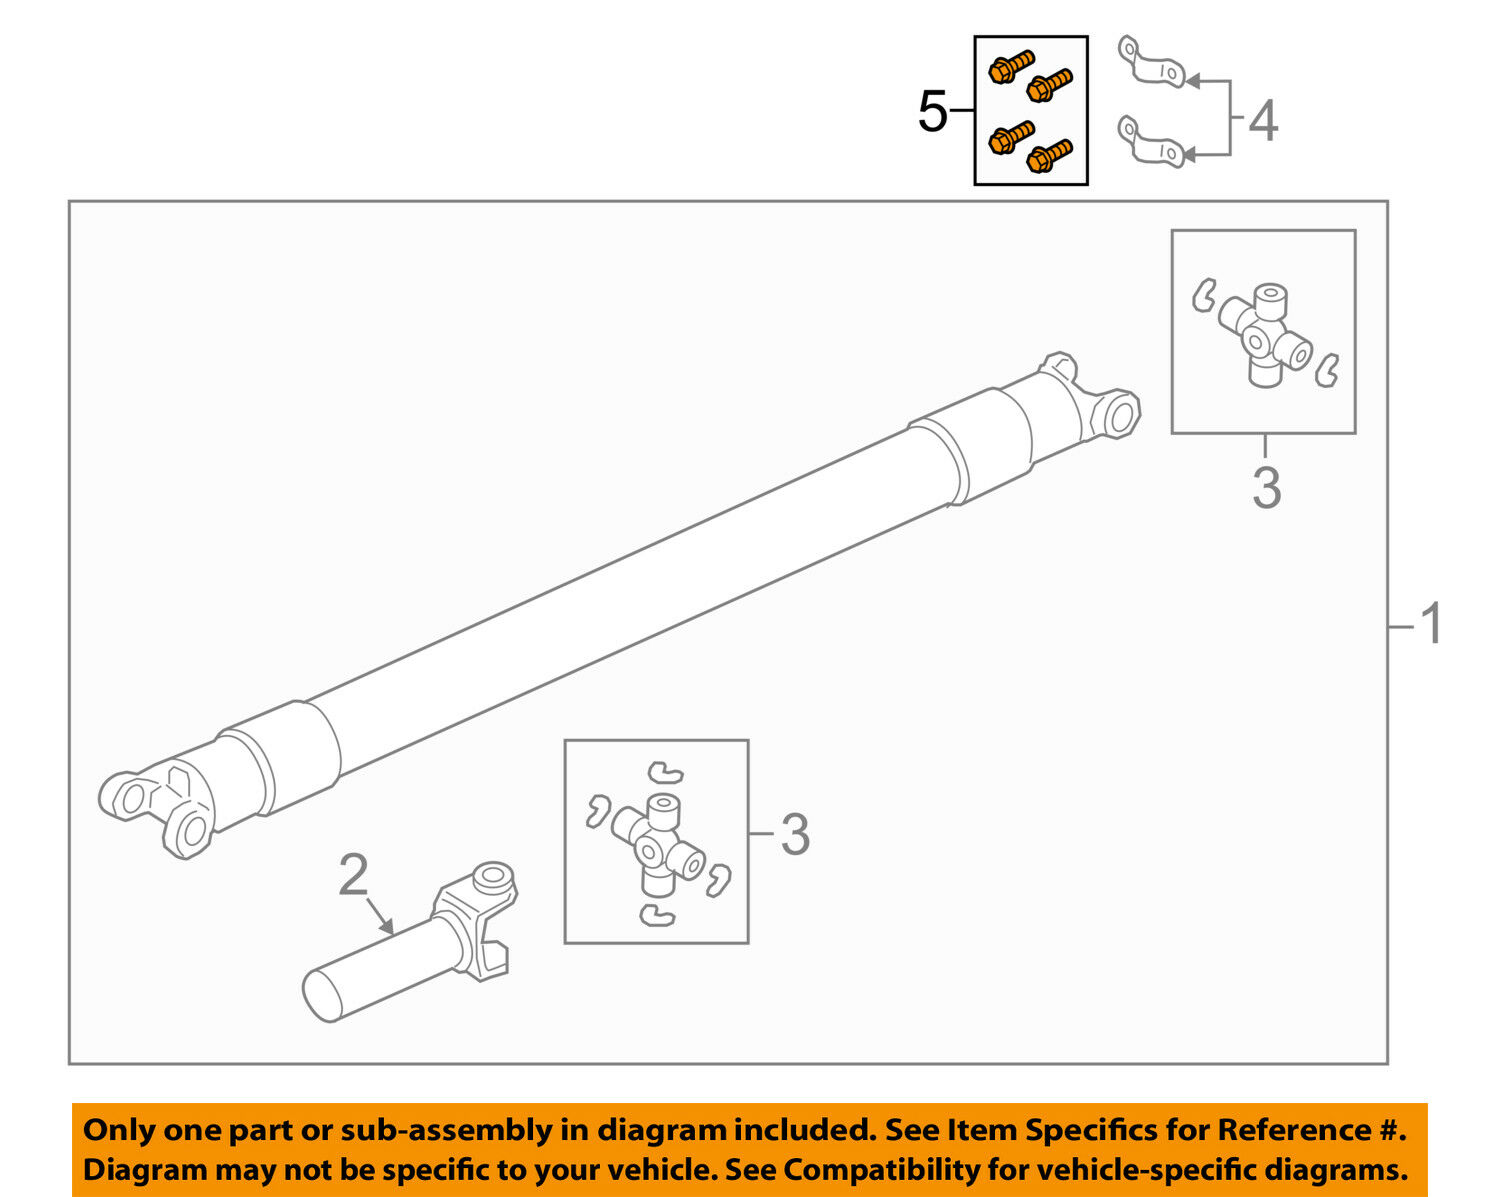 New Ford Oem Driveshaft Bolt 2010 F Series F1hz 4n272 A Ebay Truck Technical Drawings And Schematics Section G Drivetrain Norton Secured Powered By Verisign